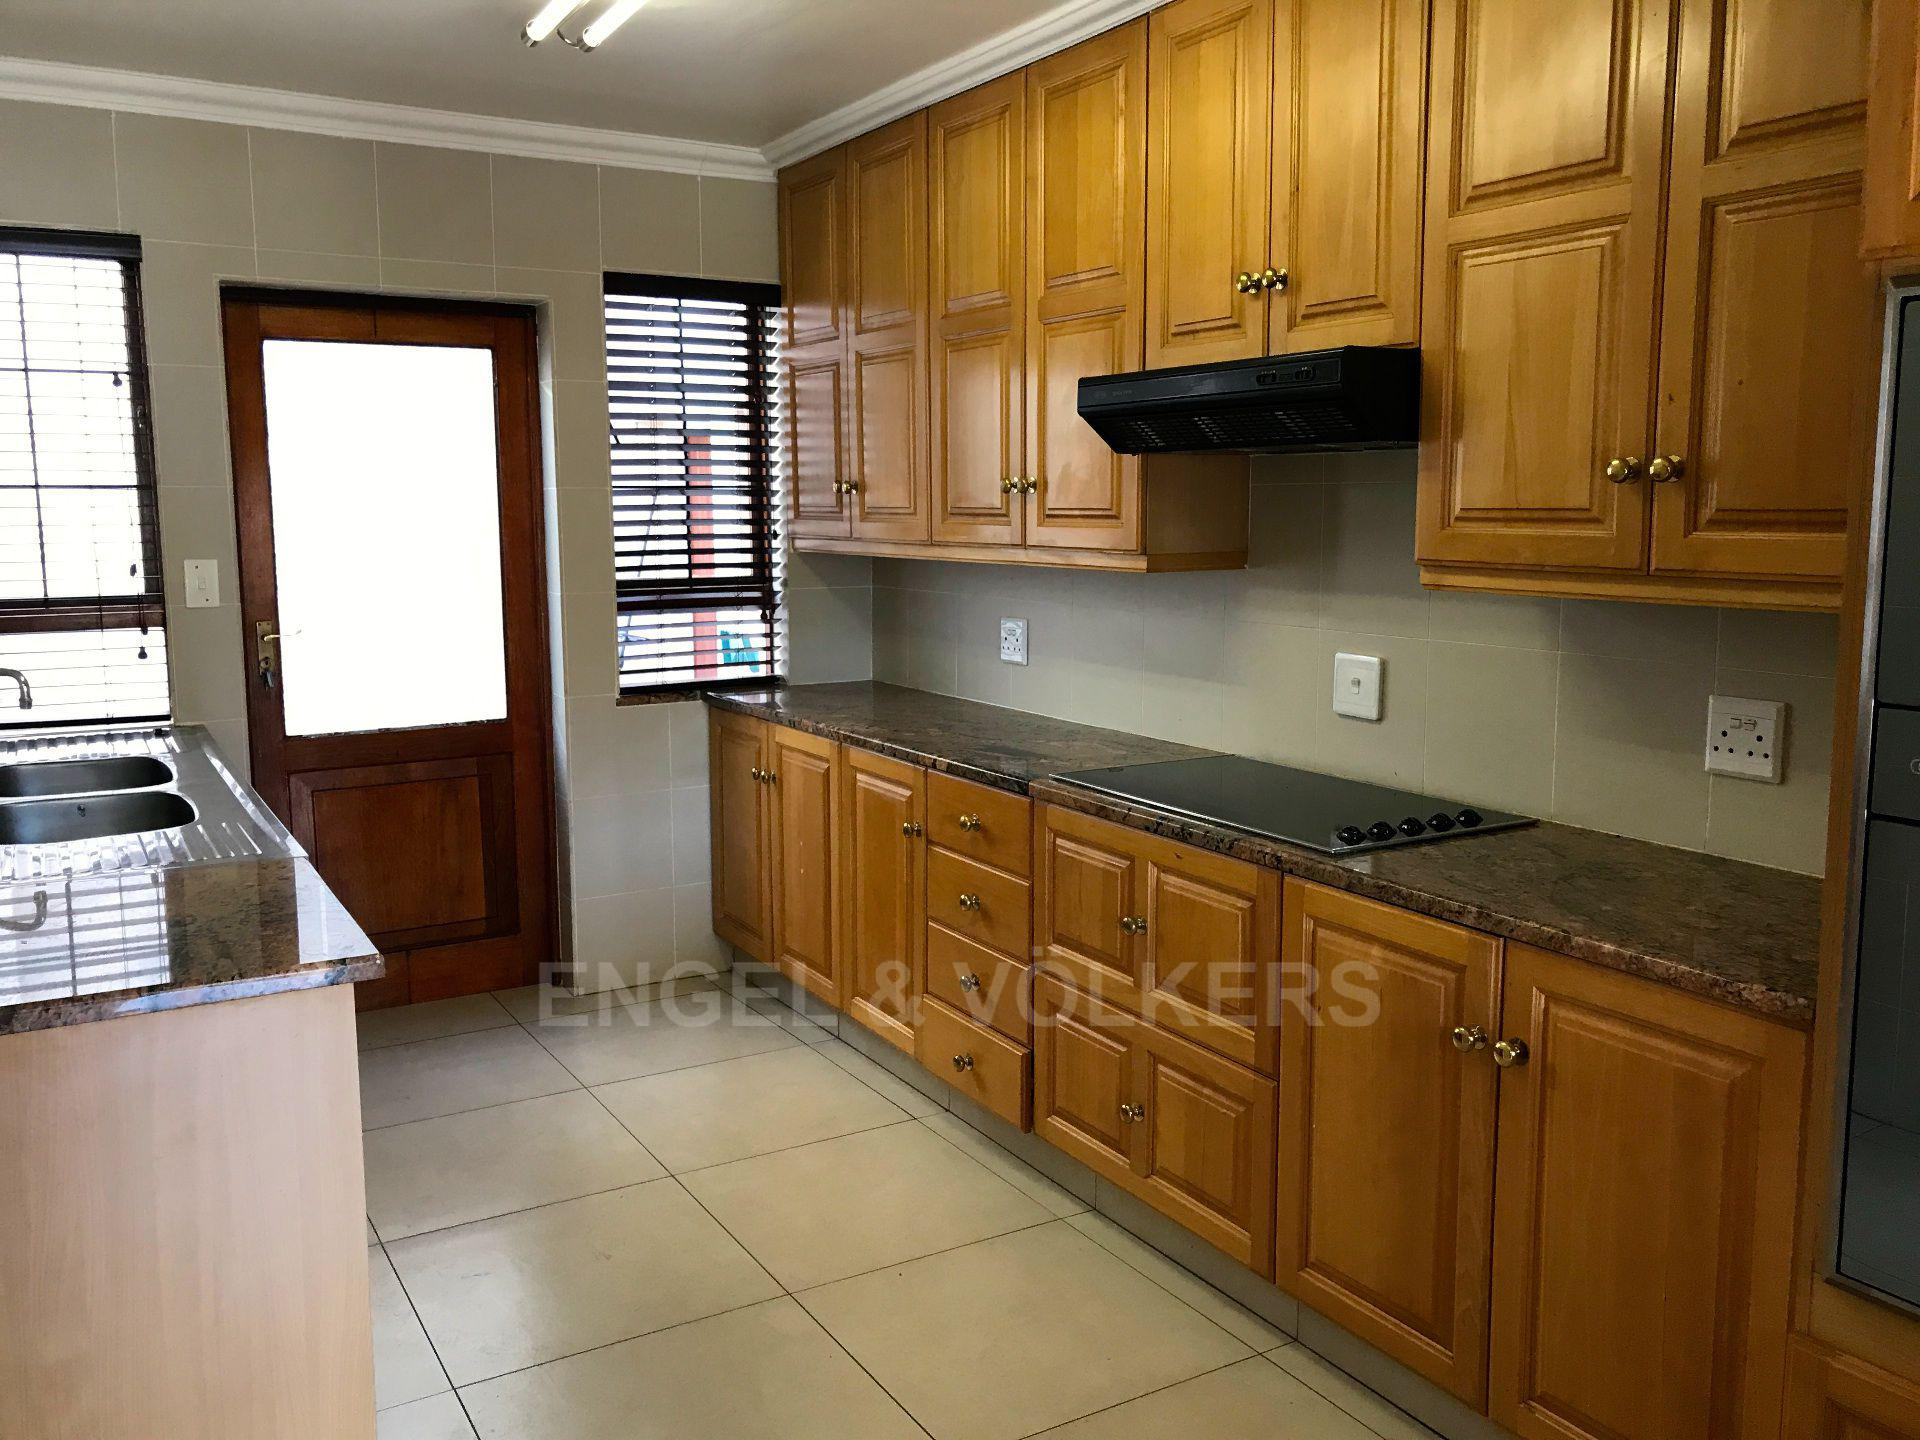 Waterkloof property for sale. Ref No: 13500498. Picture no 11